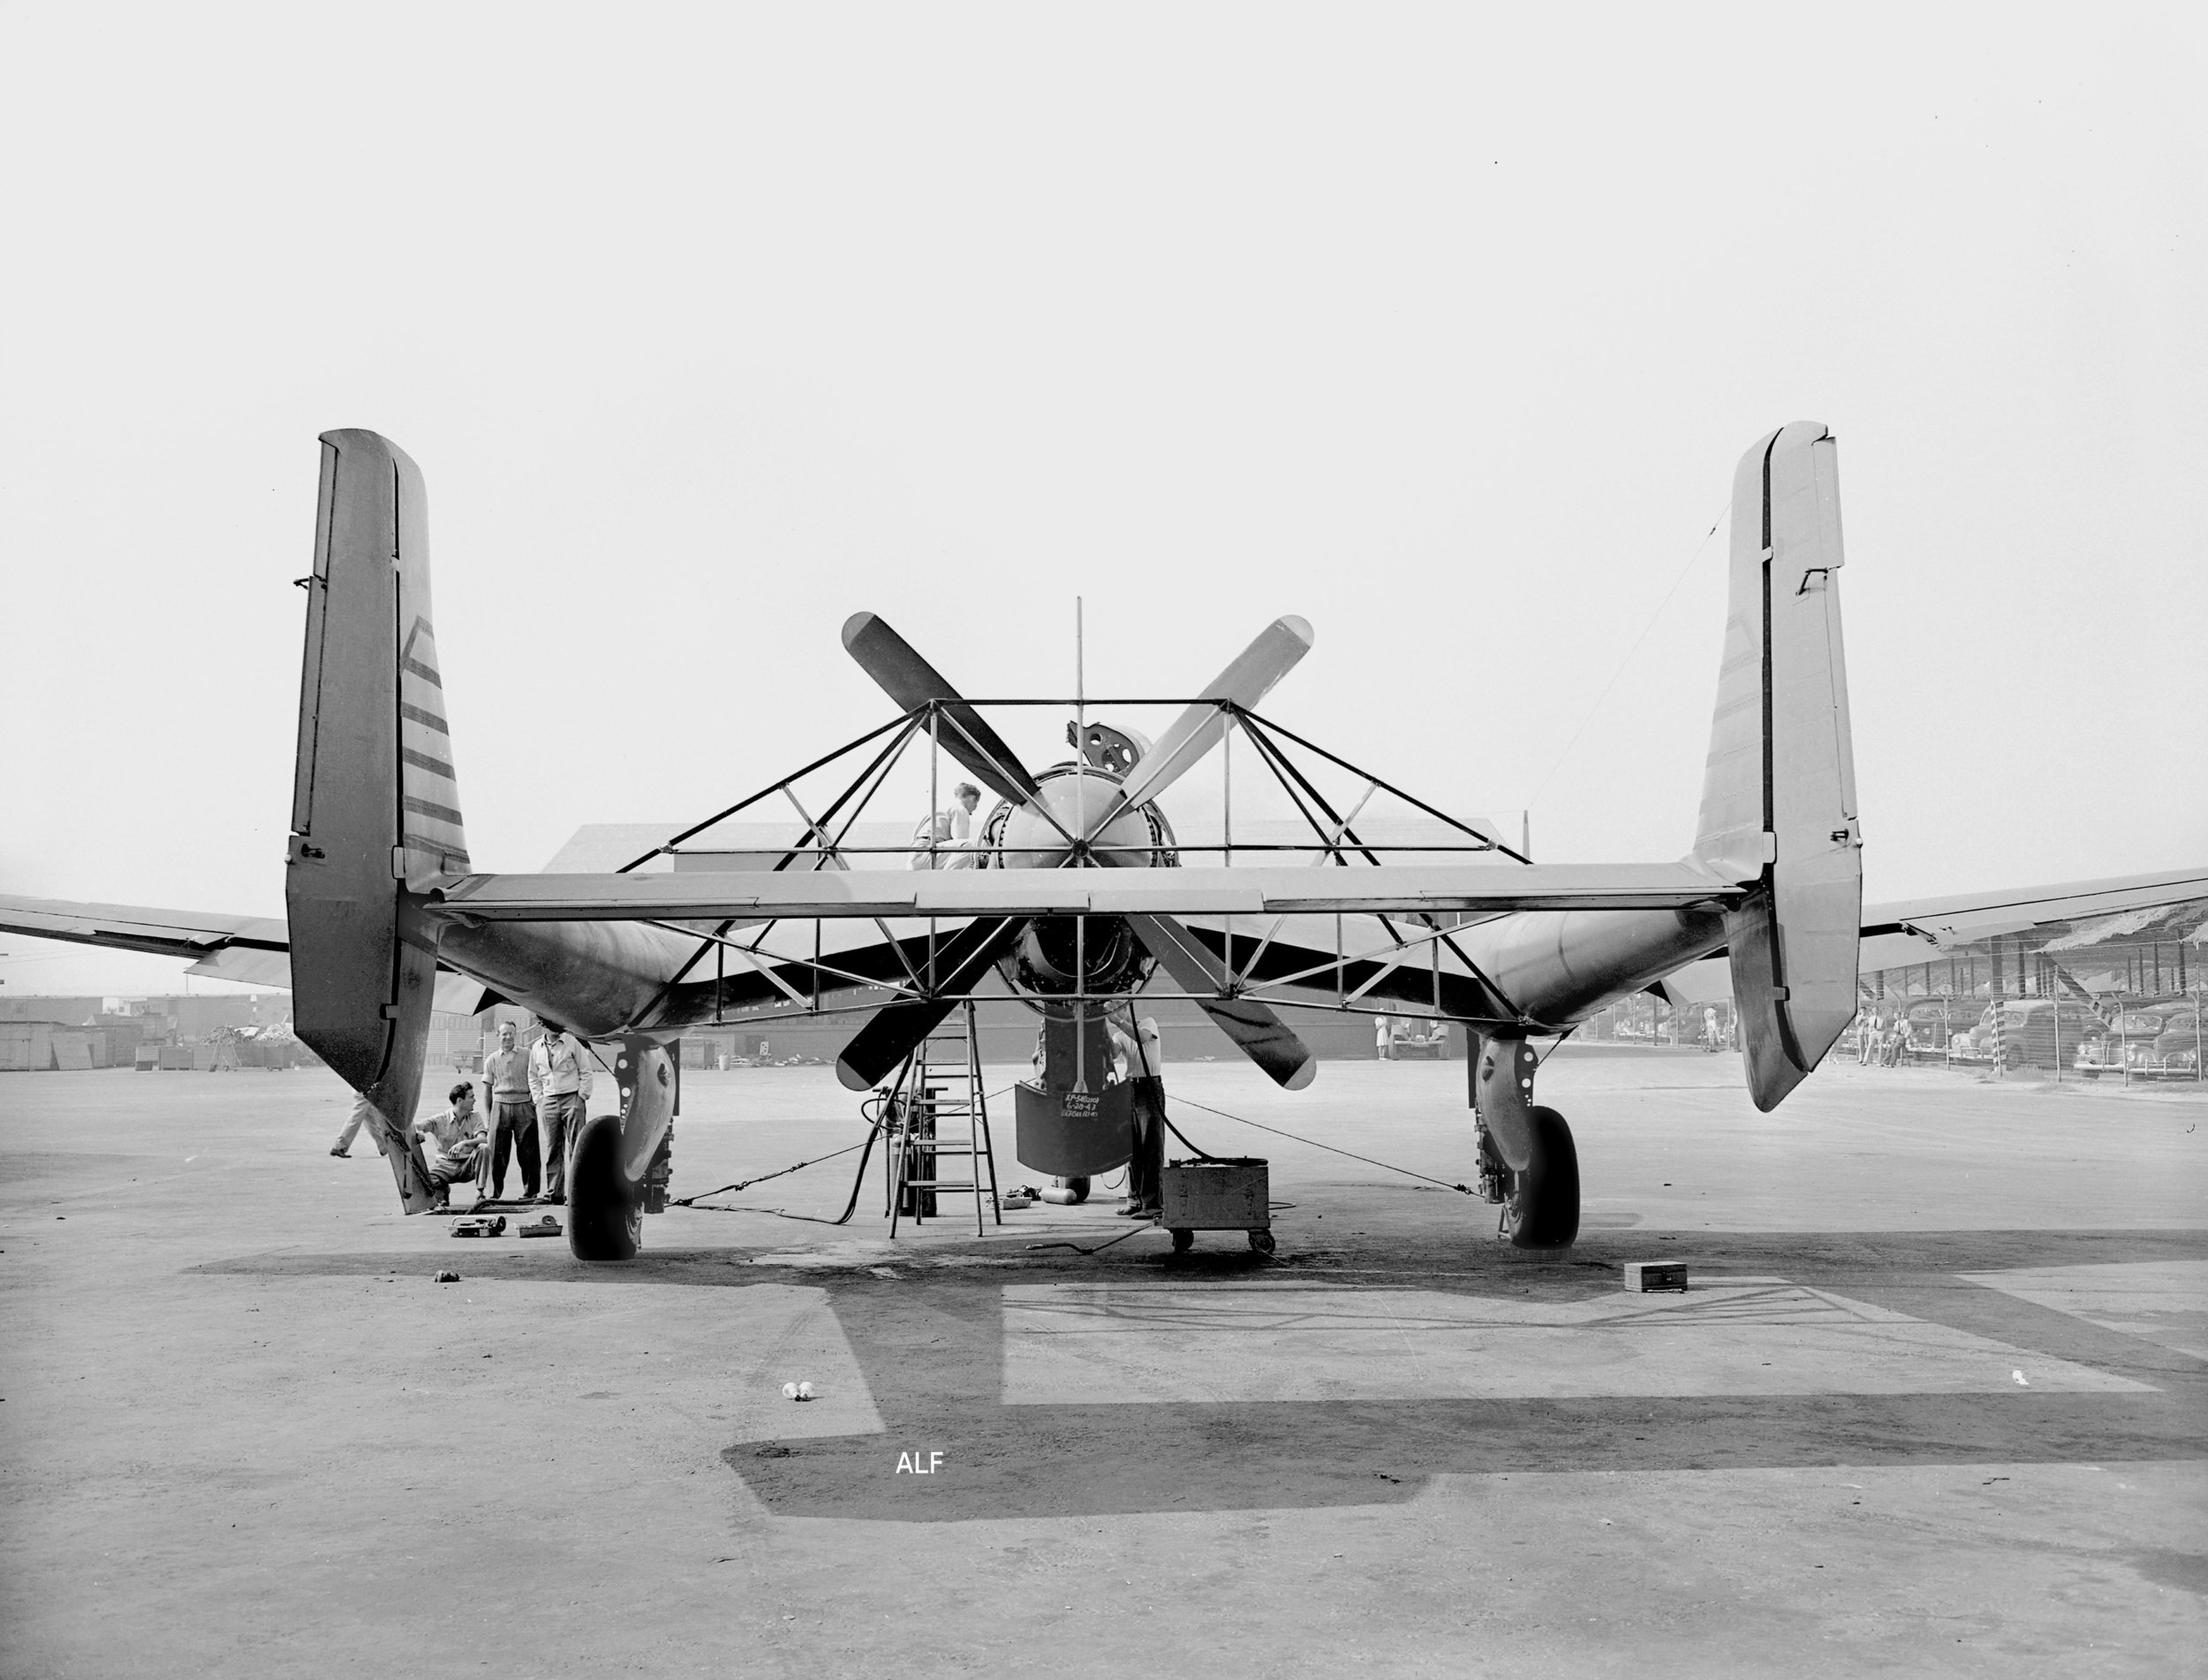 Rear view of Consolidated Vultee XP-54